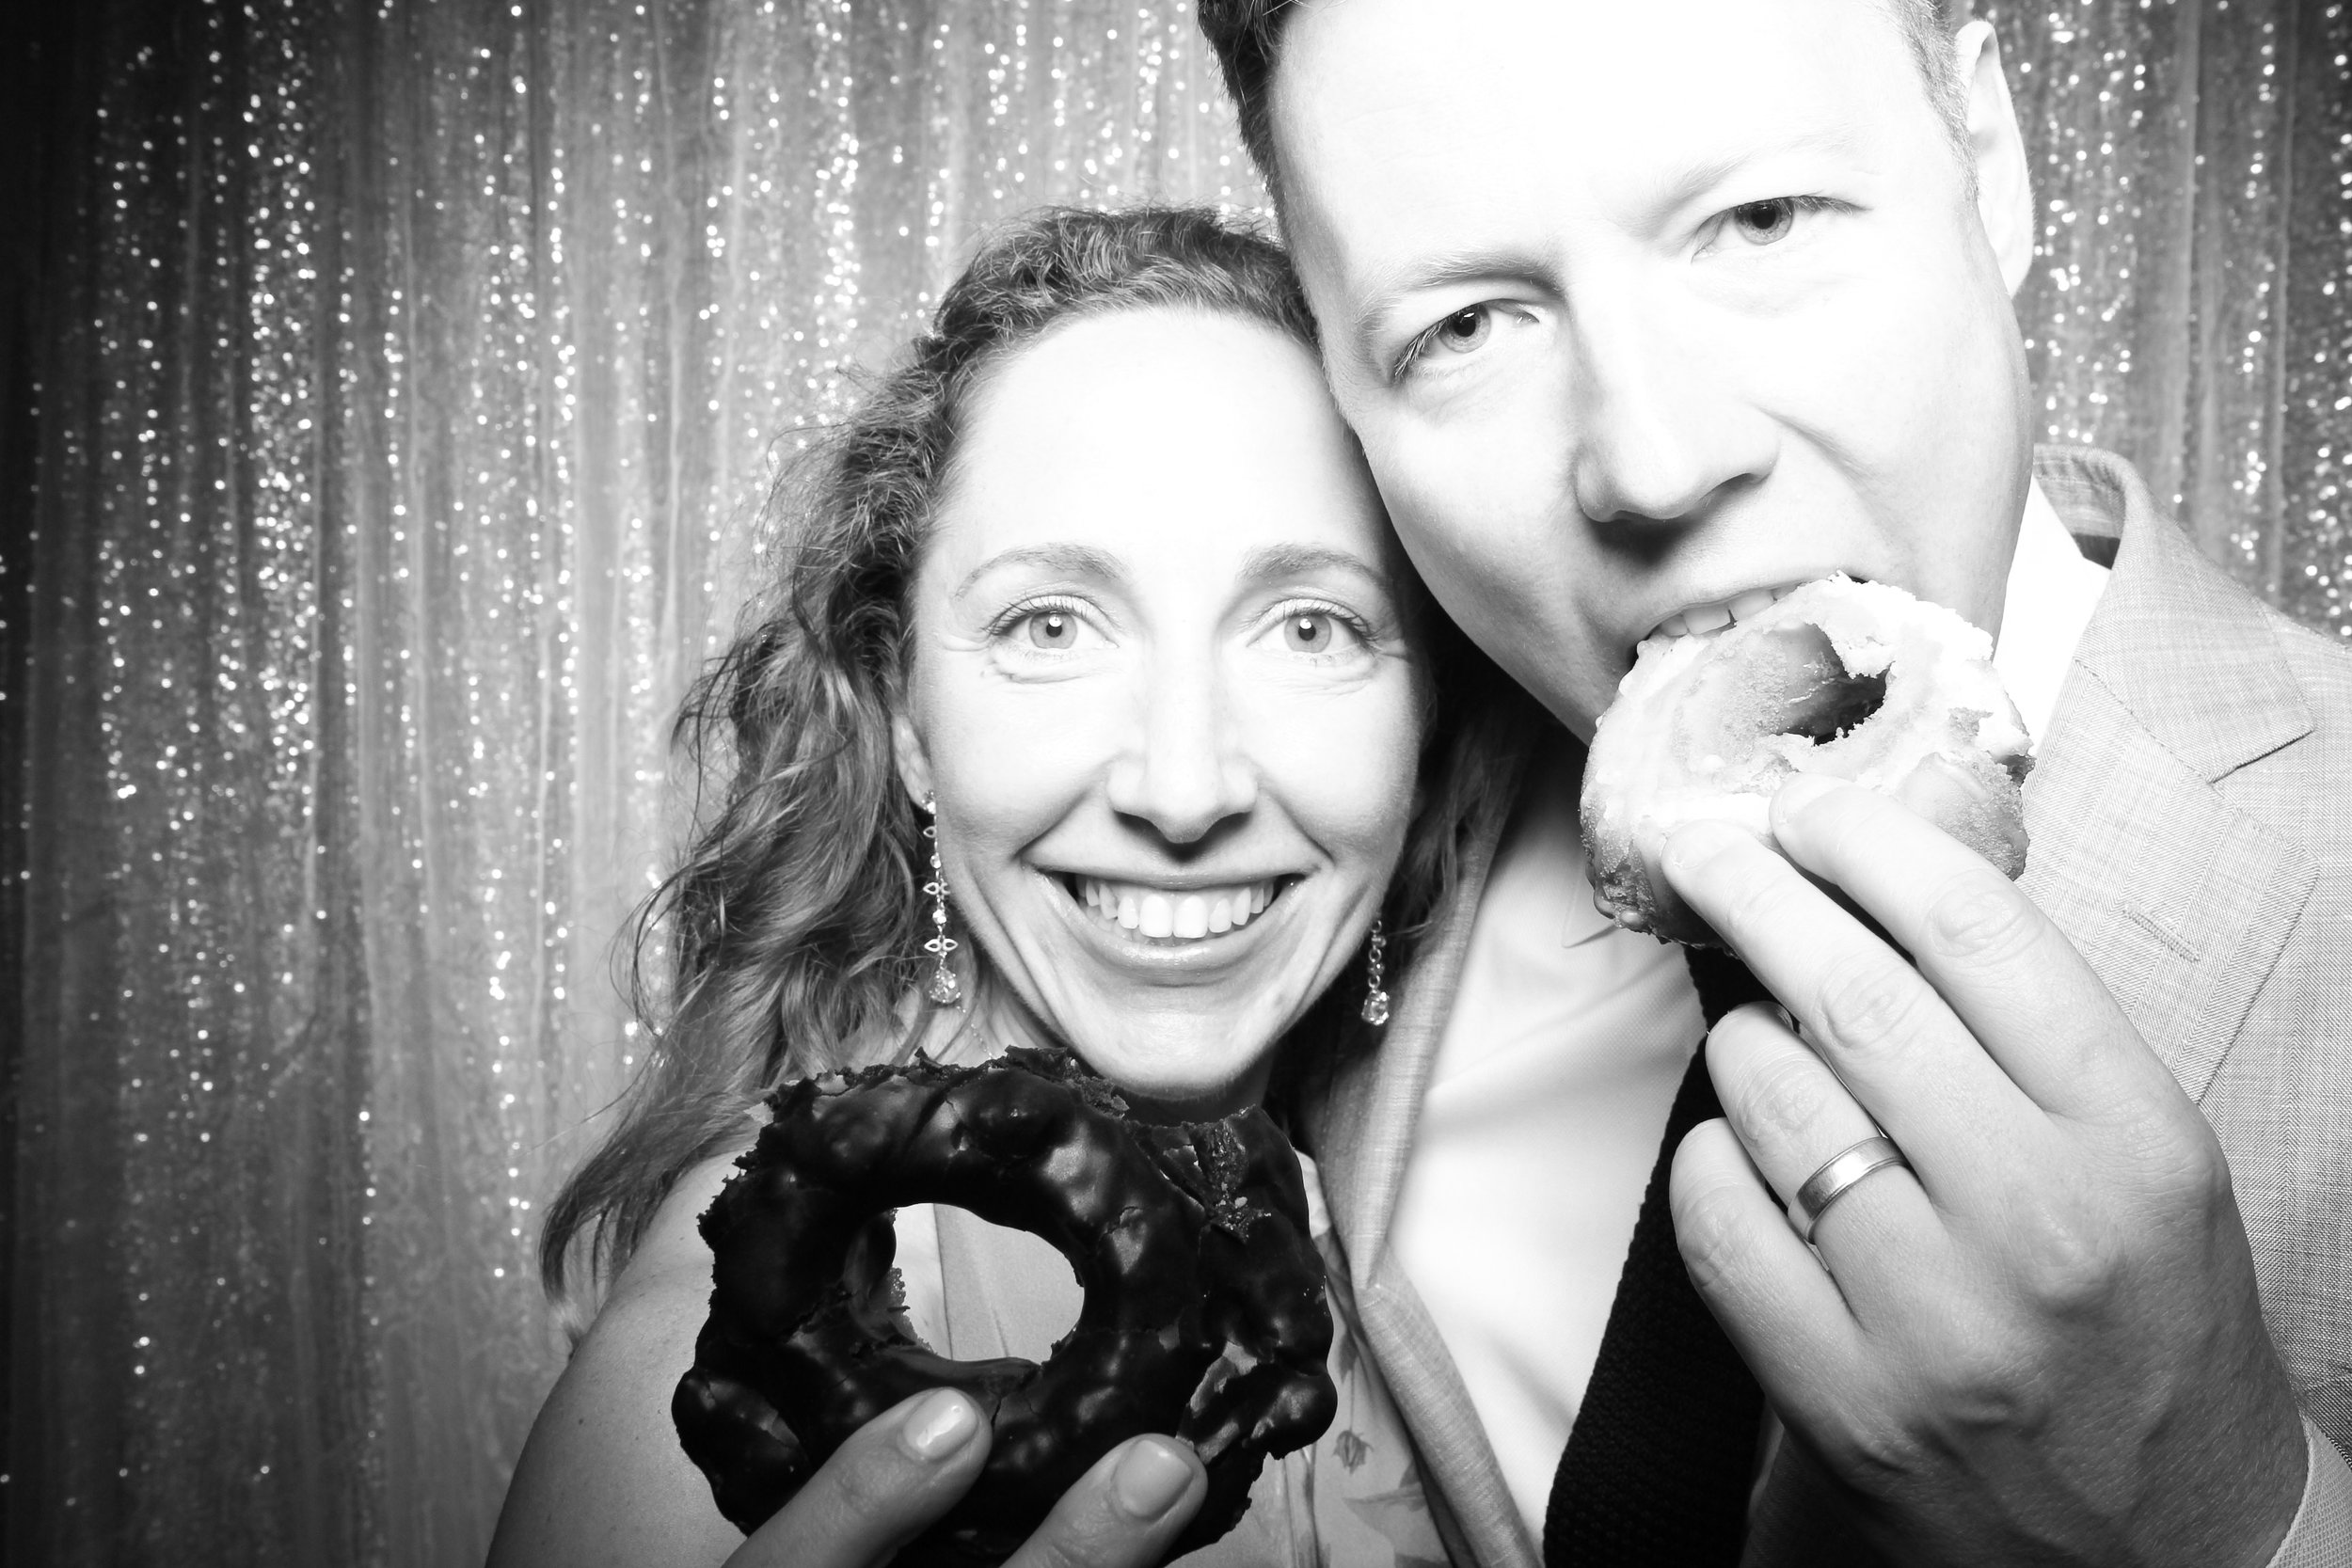 Chicago_Vintage_Wedding_Photobooth_Adler_Planetarium_06.jpg